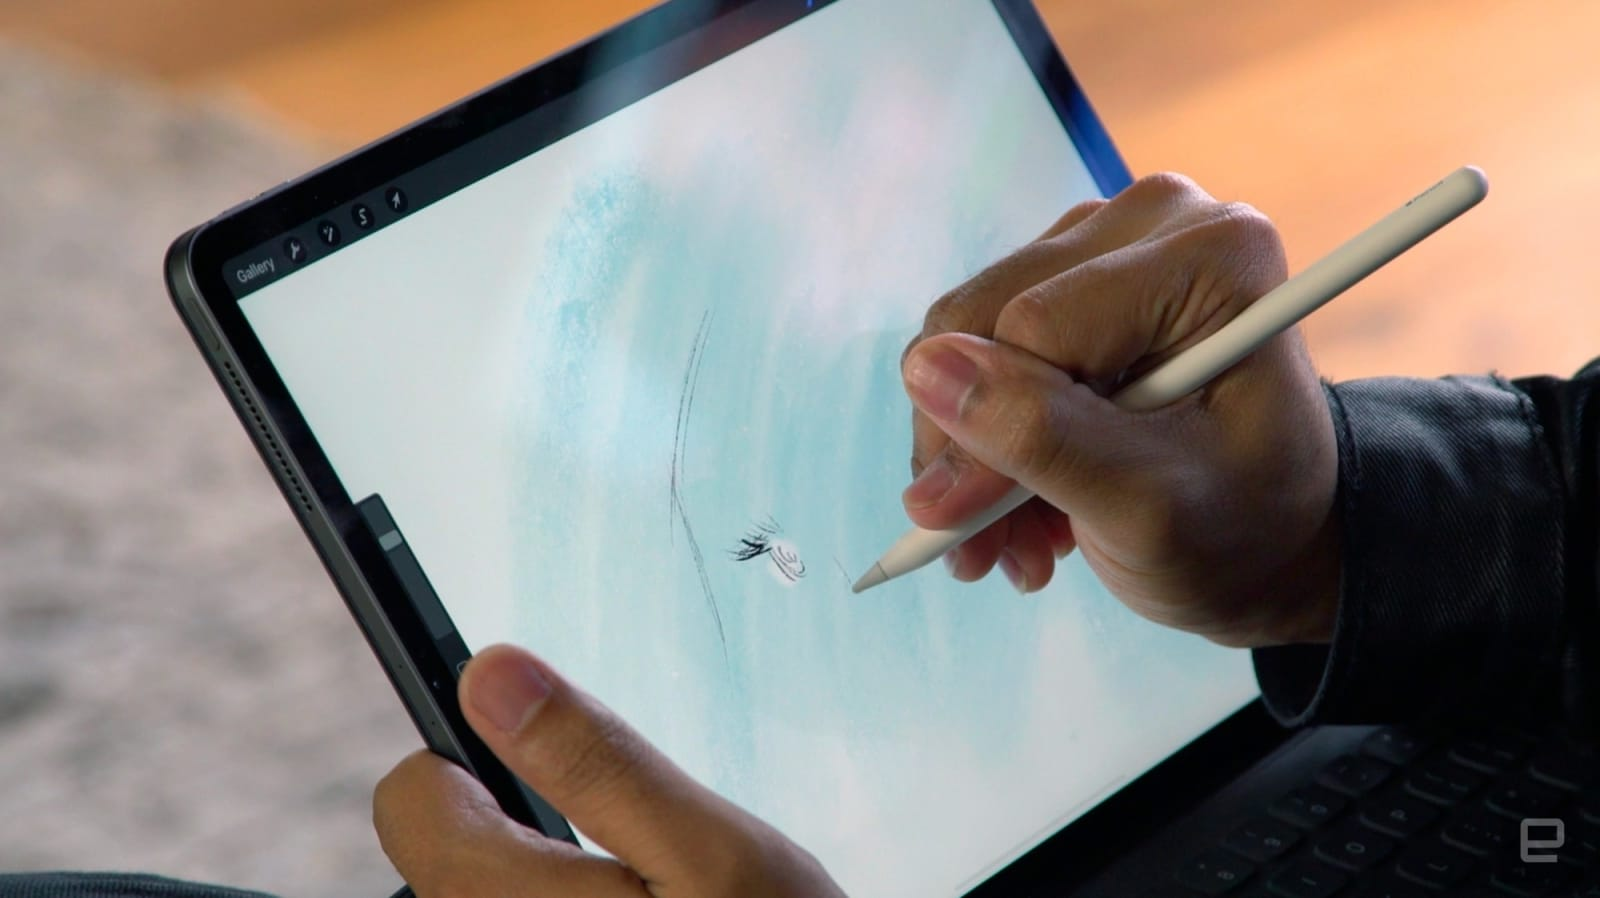 Adobe may reveal Illustrator for iPad in November